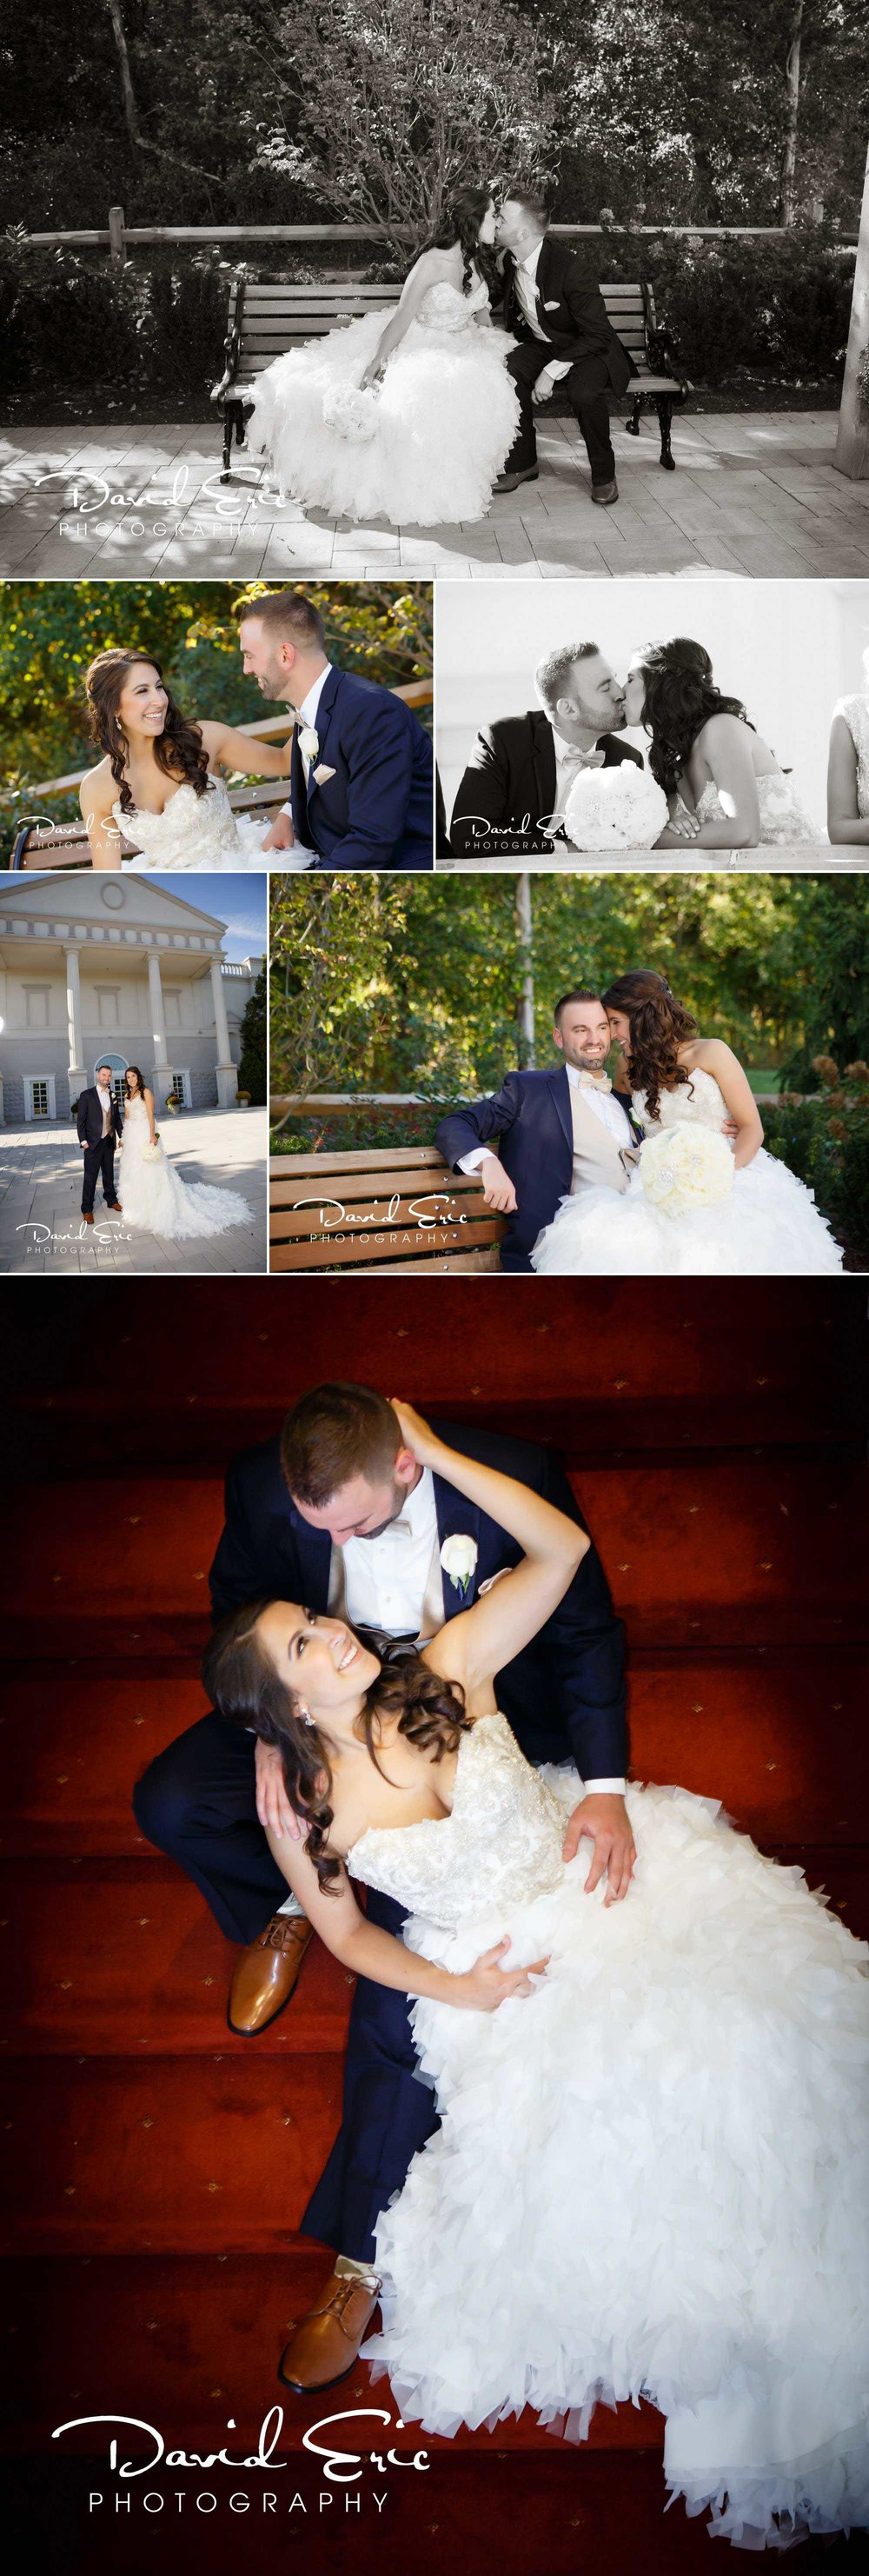 We are listed on The Knot Wedding Photographer page as well as on Wedding Wire Photographer page